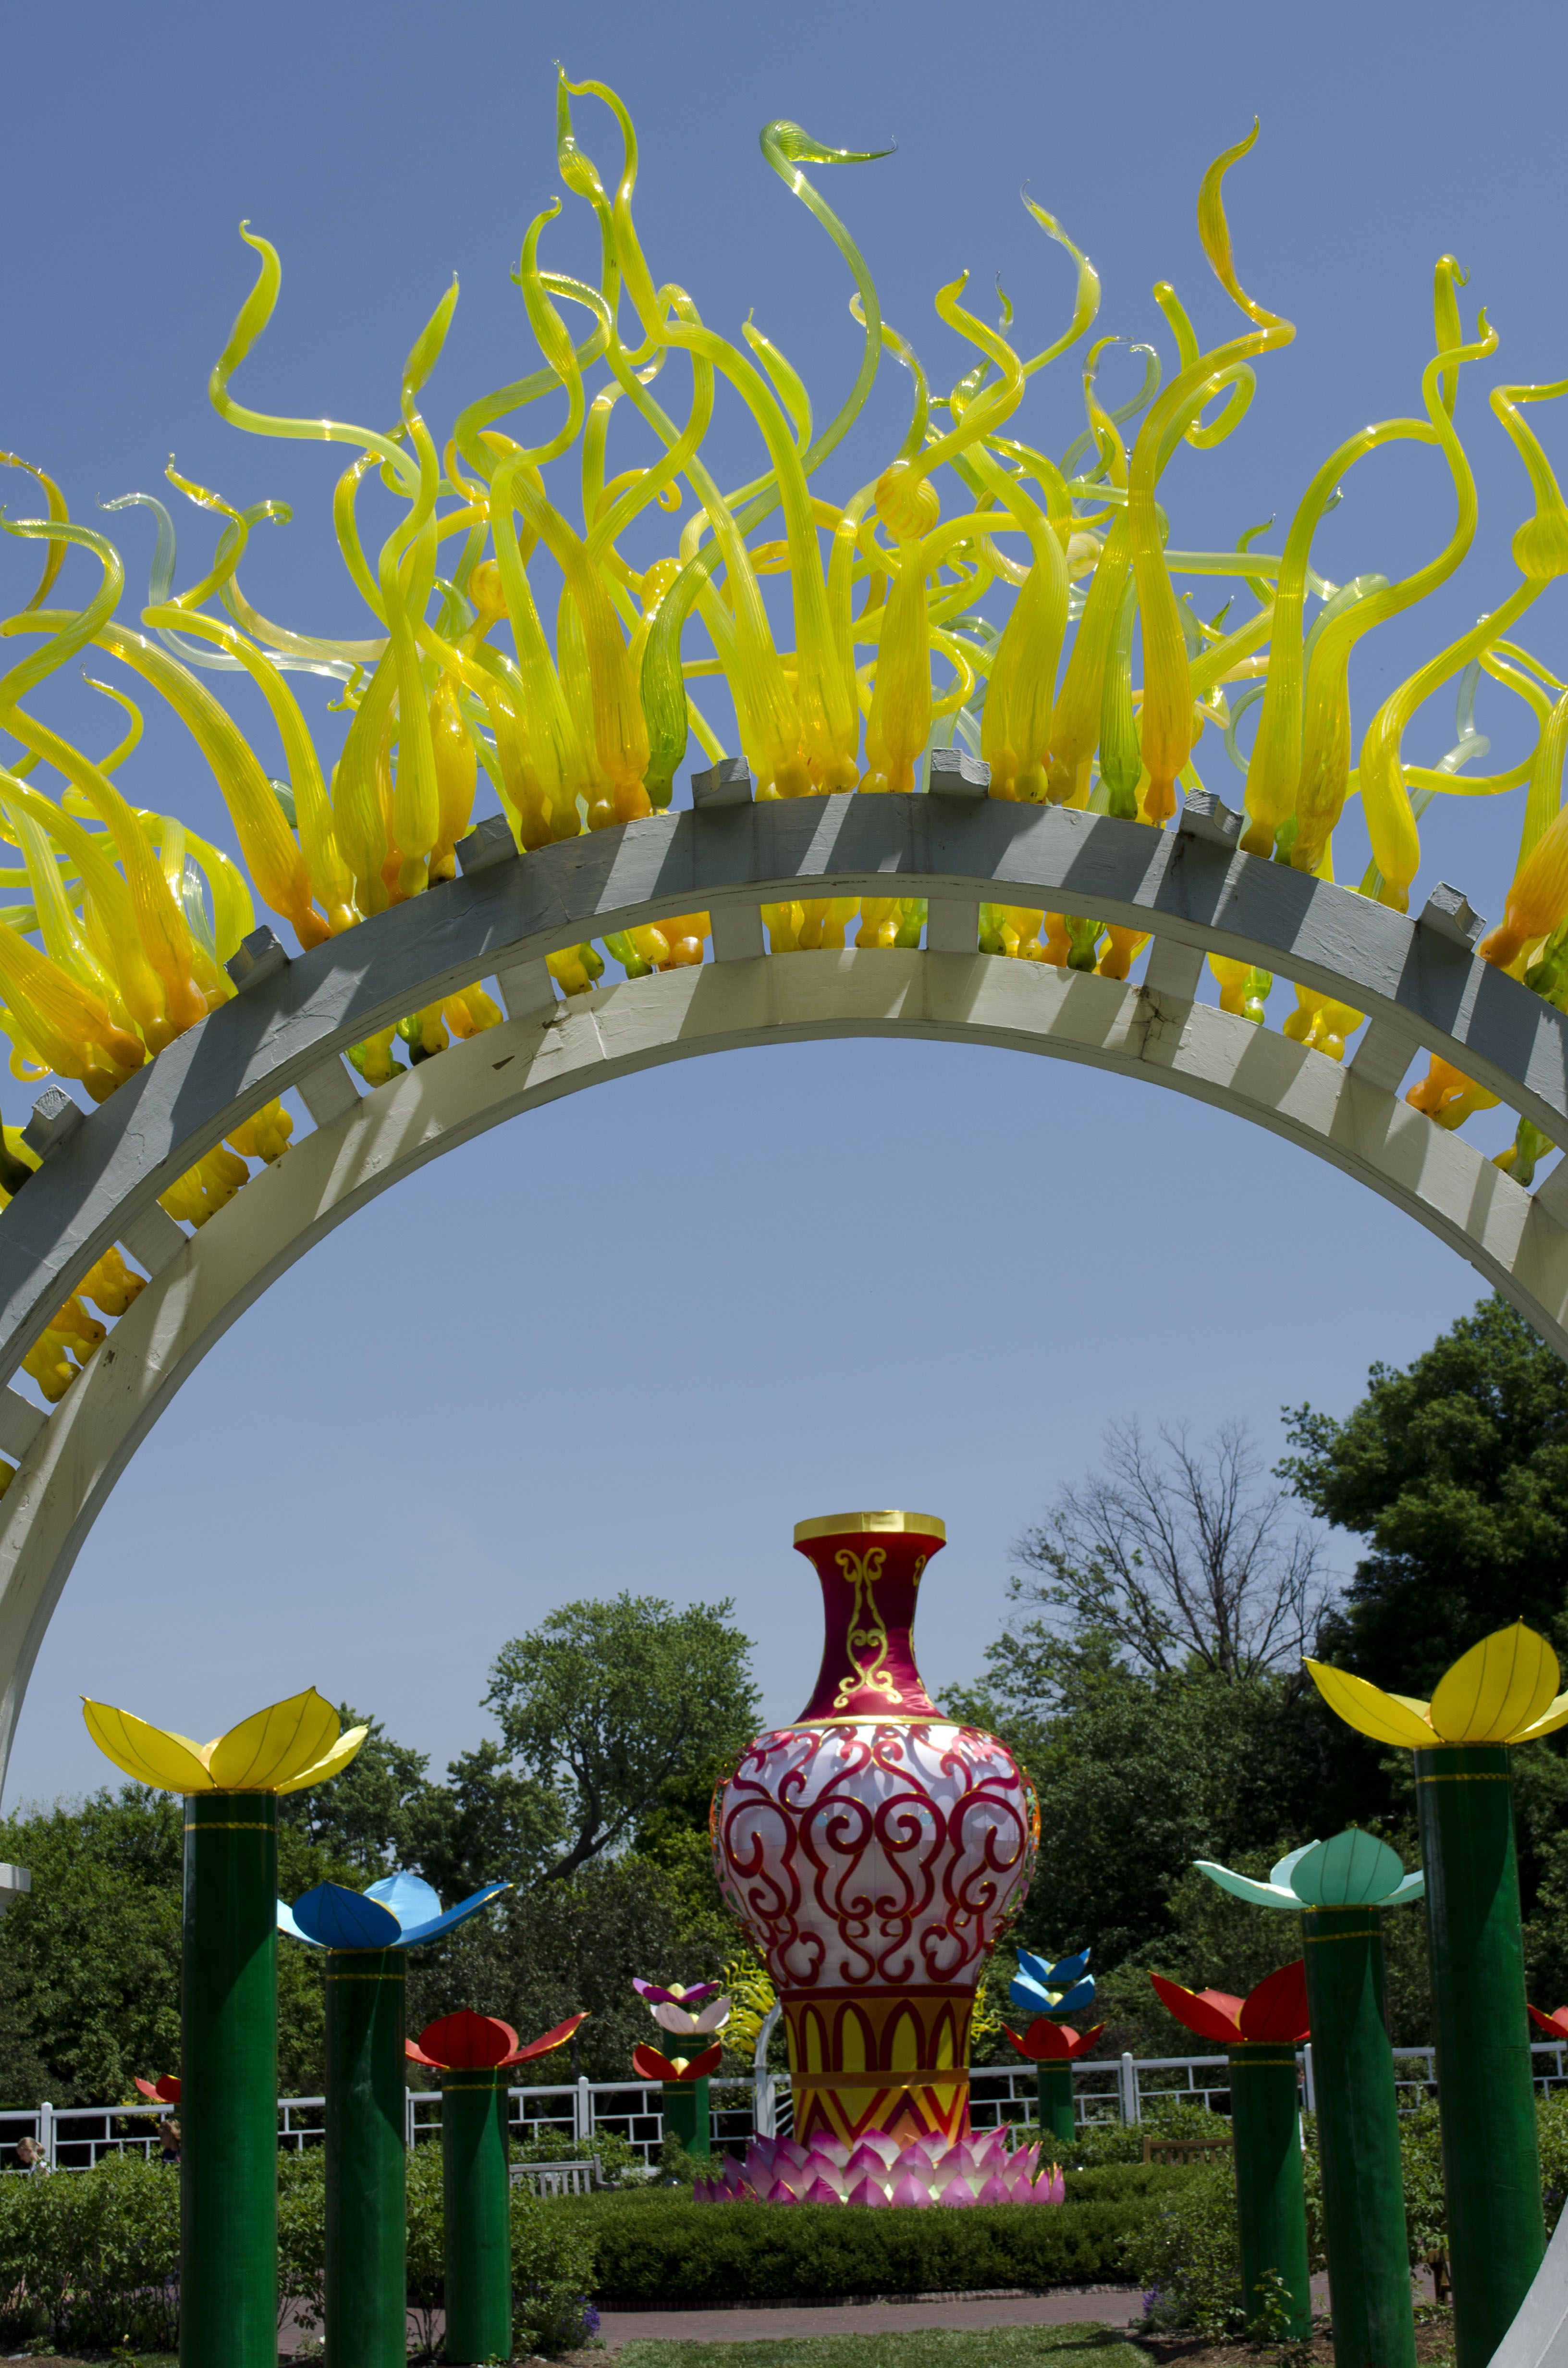 Decorating for the Lantern Festival! Photo by Cat Hendel